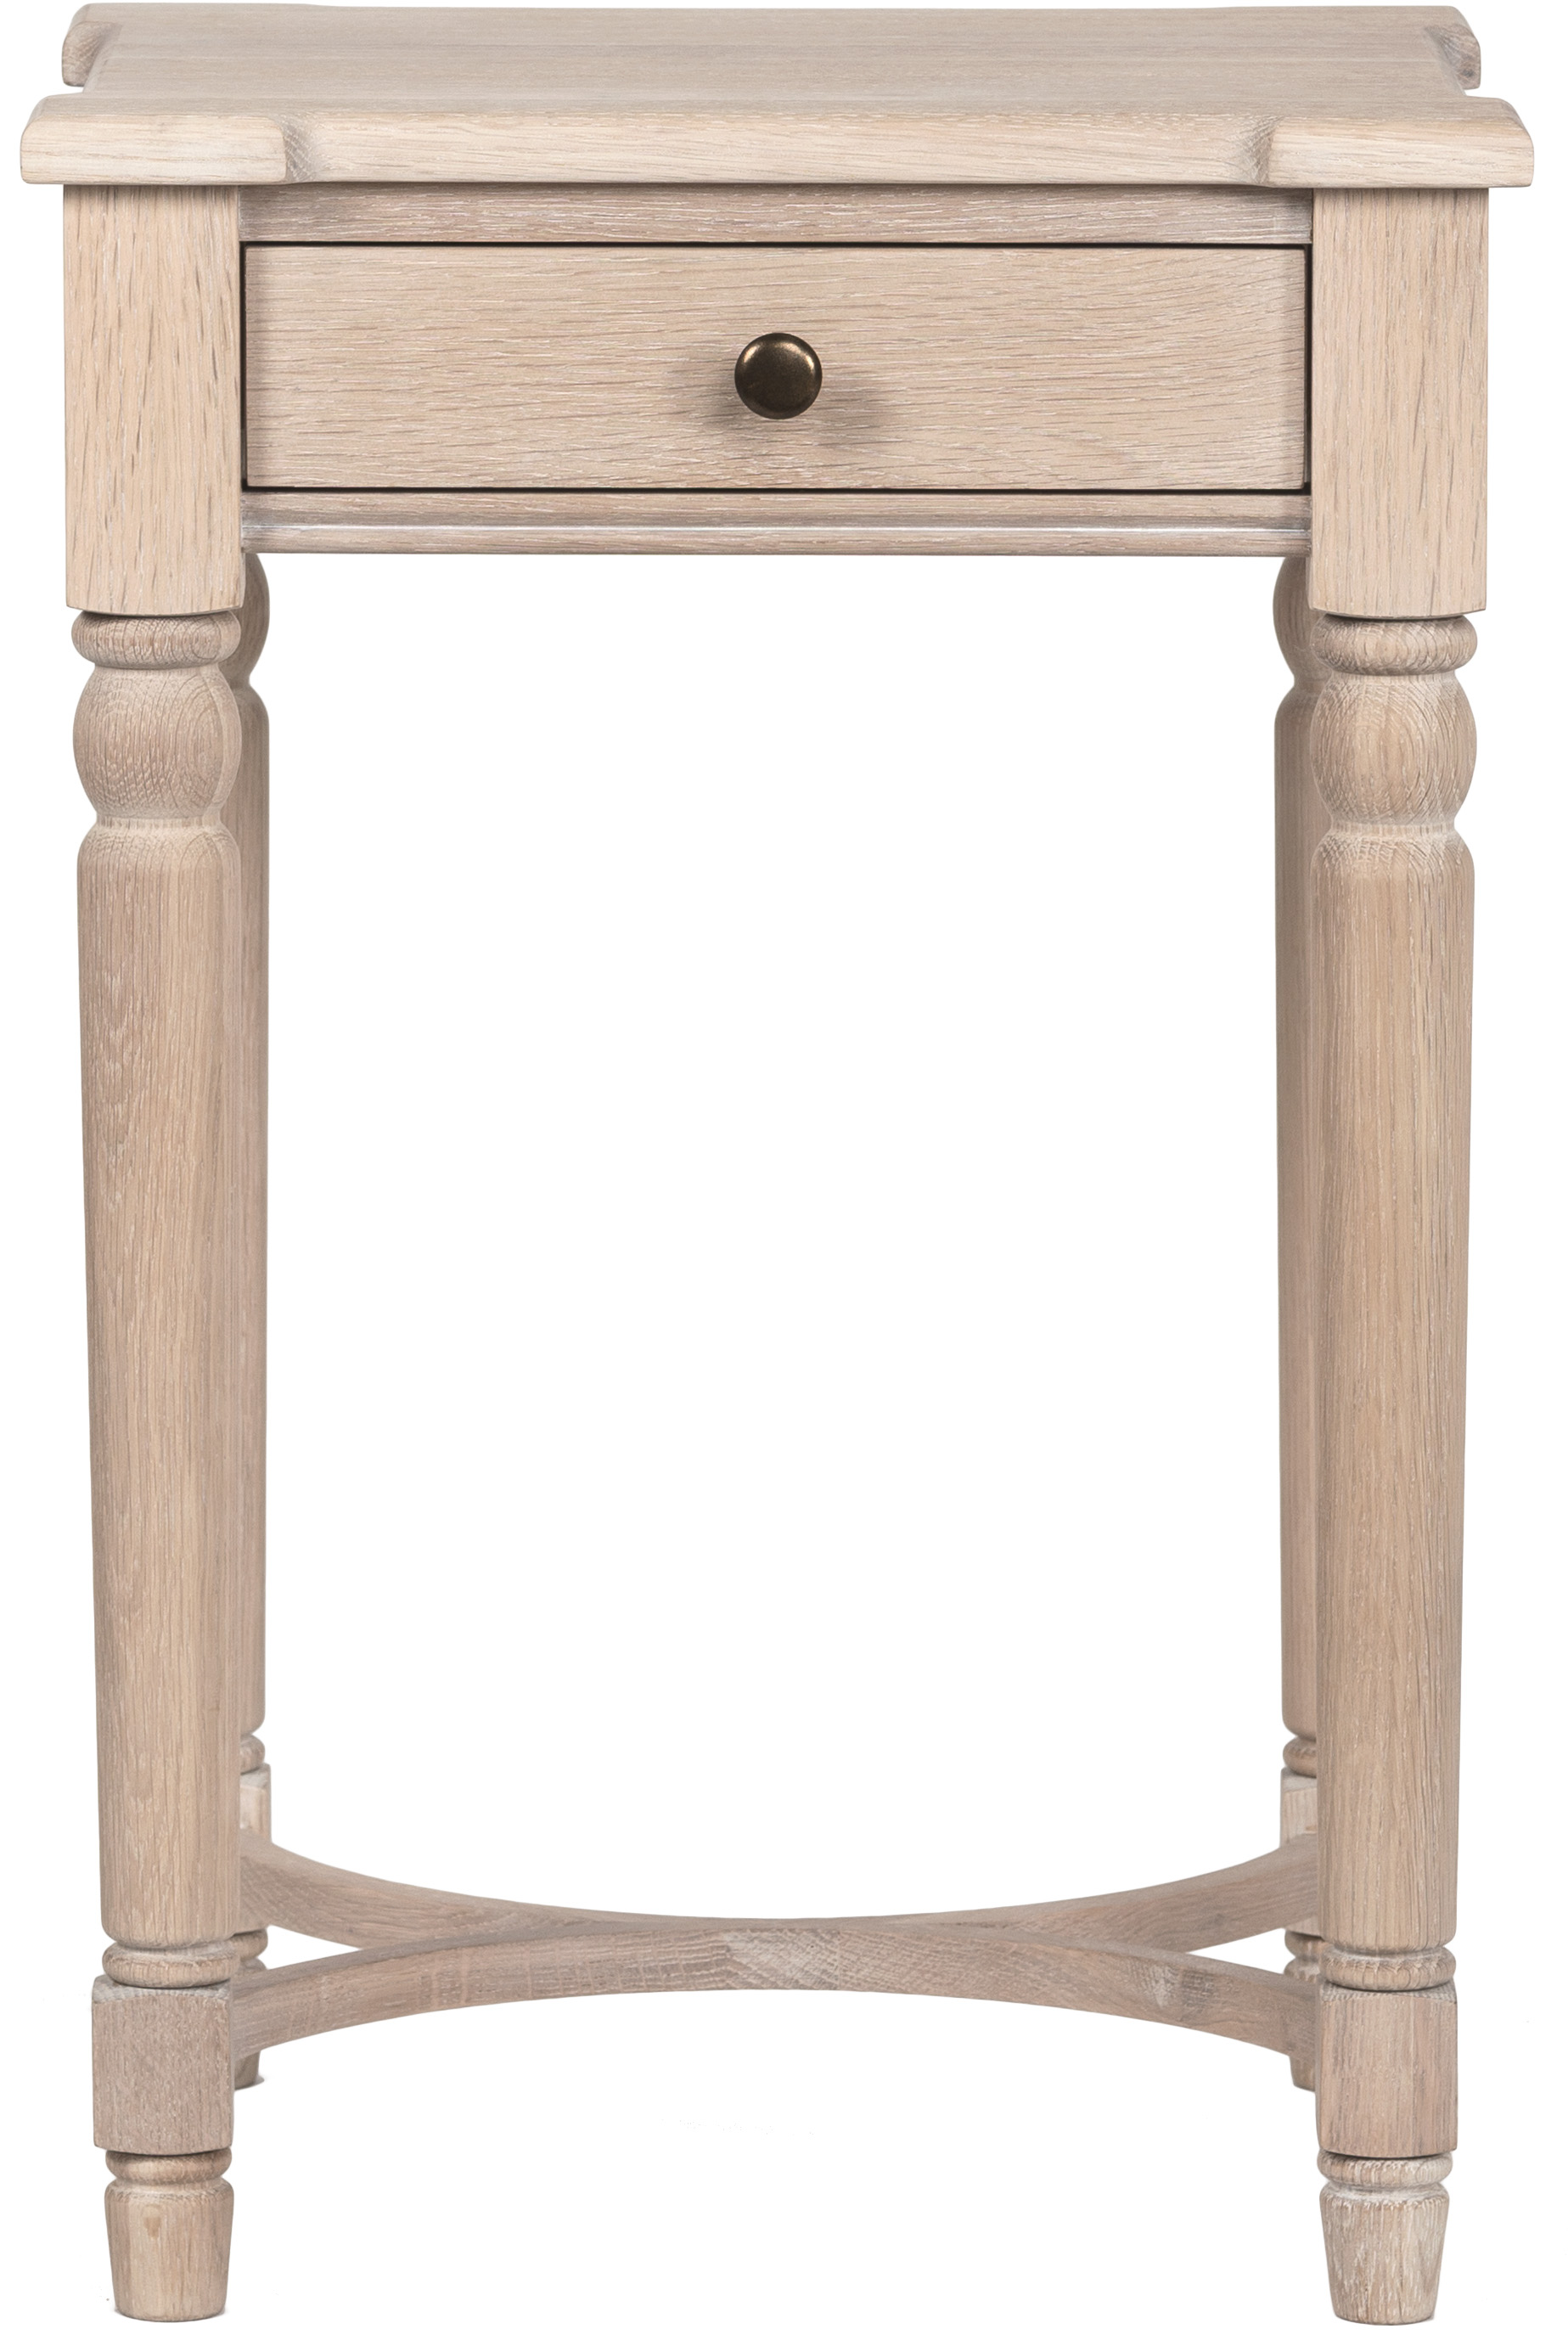 Neptune Blenheim Oak Side Table Bedside Furniture